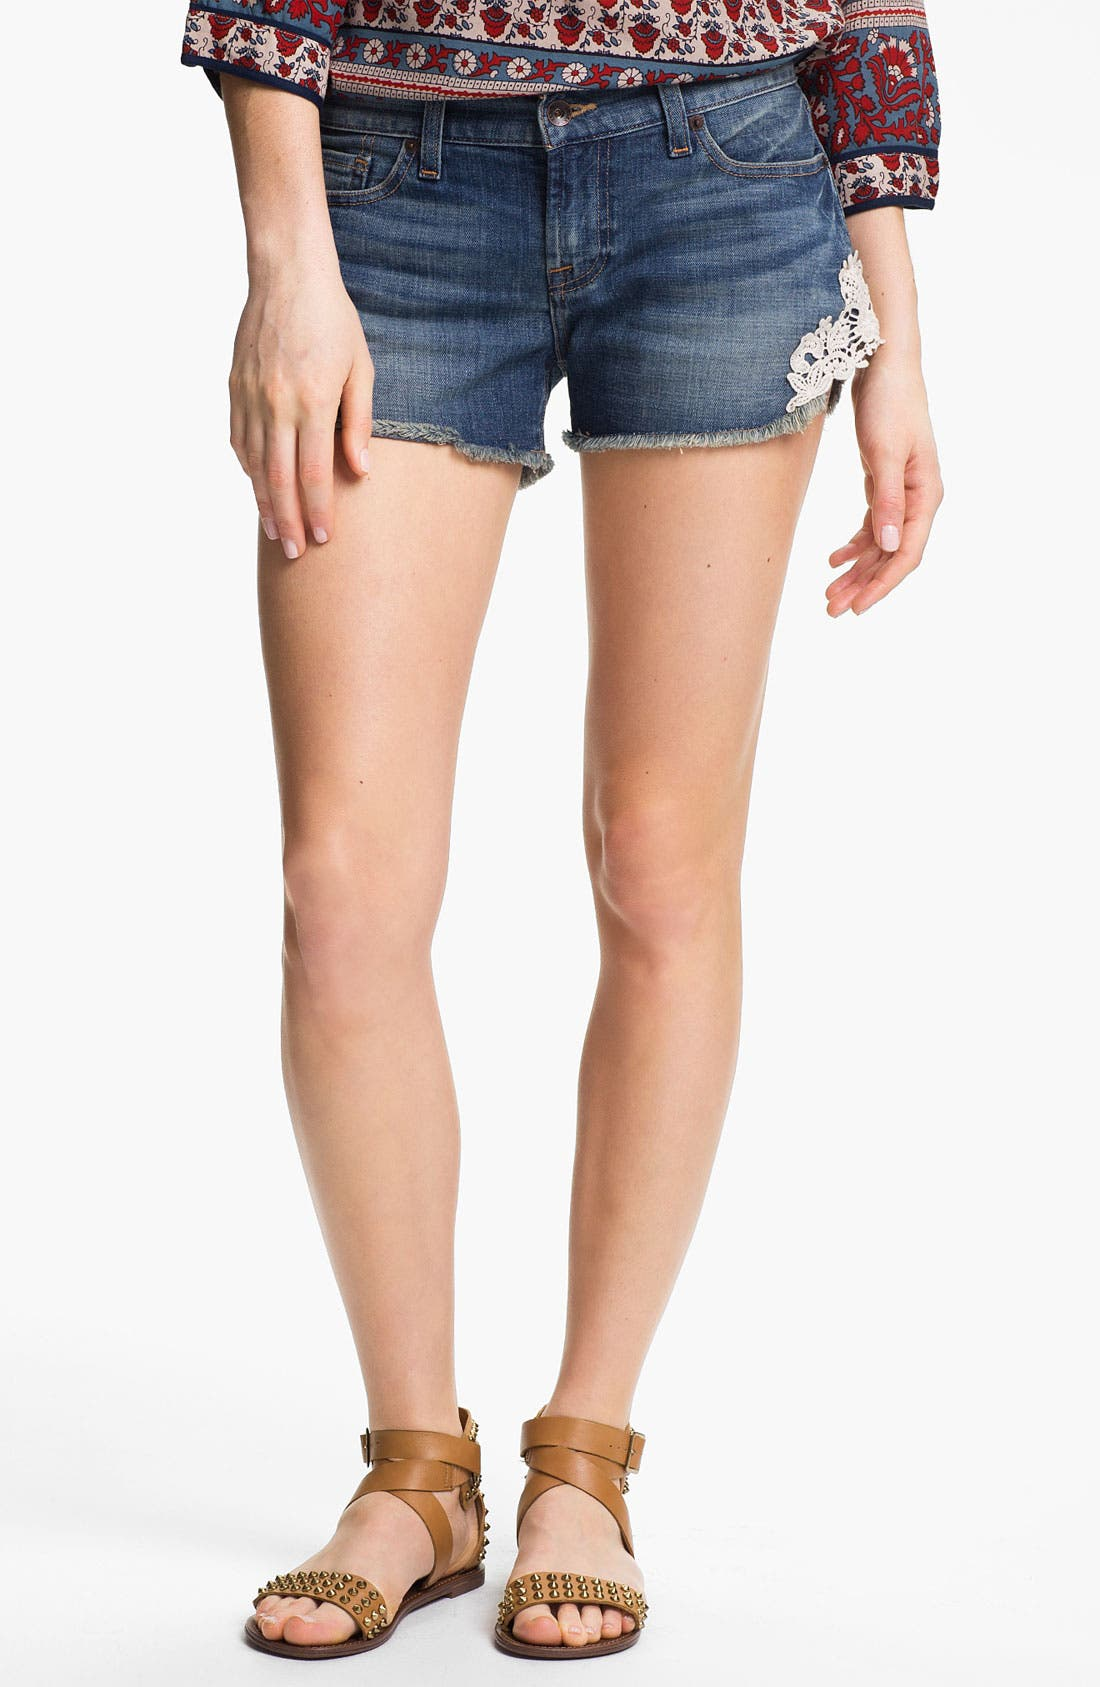 Alternate Image 1 Selected - Lucky Brand 'Riley' Denim Shorts (Islip) (Online Exclusive)